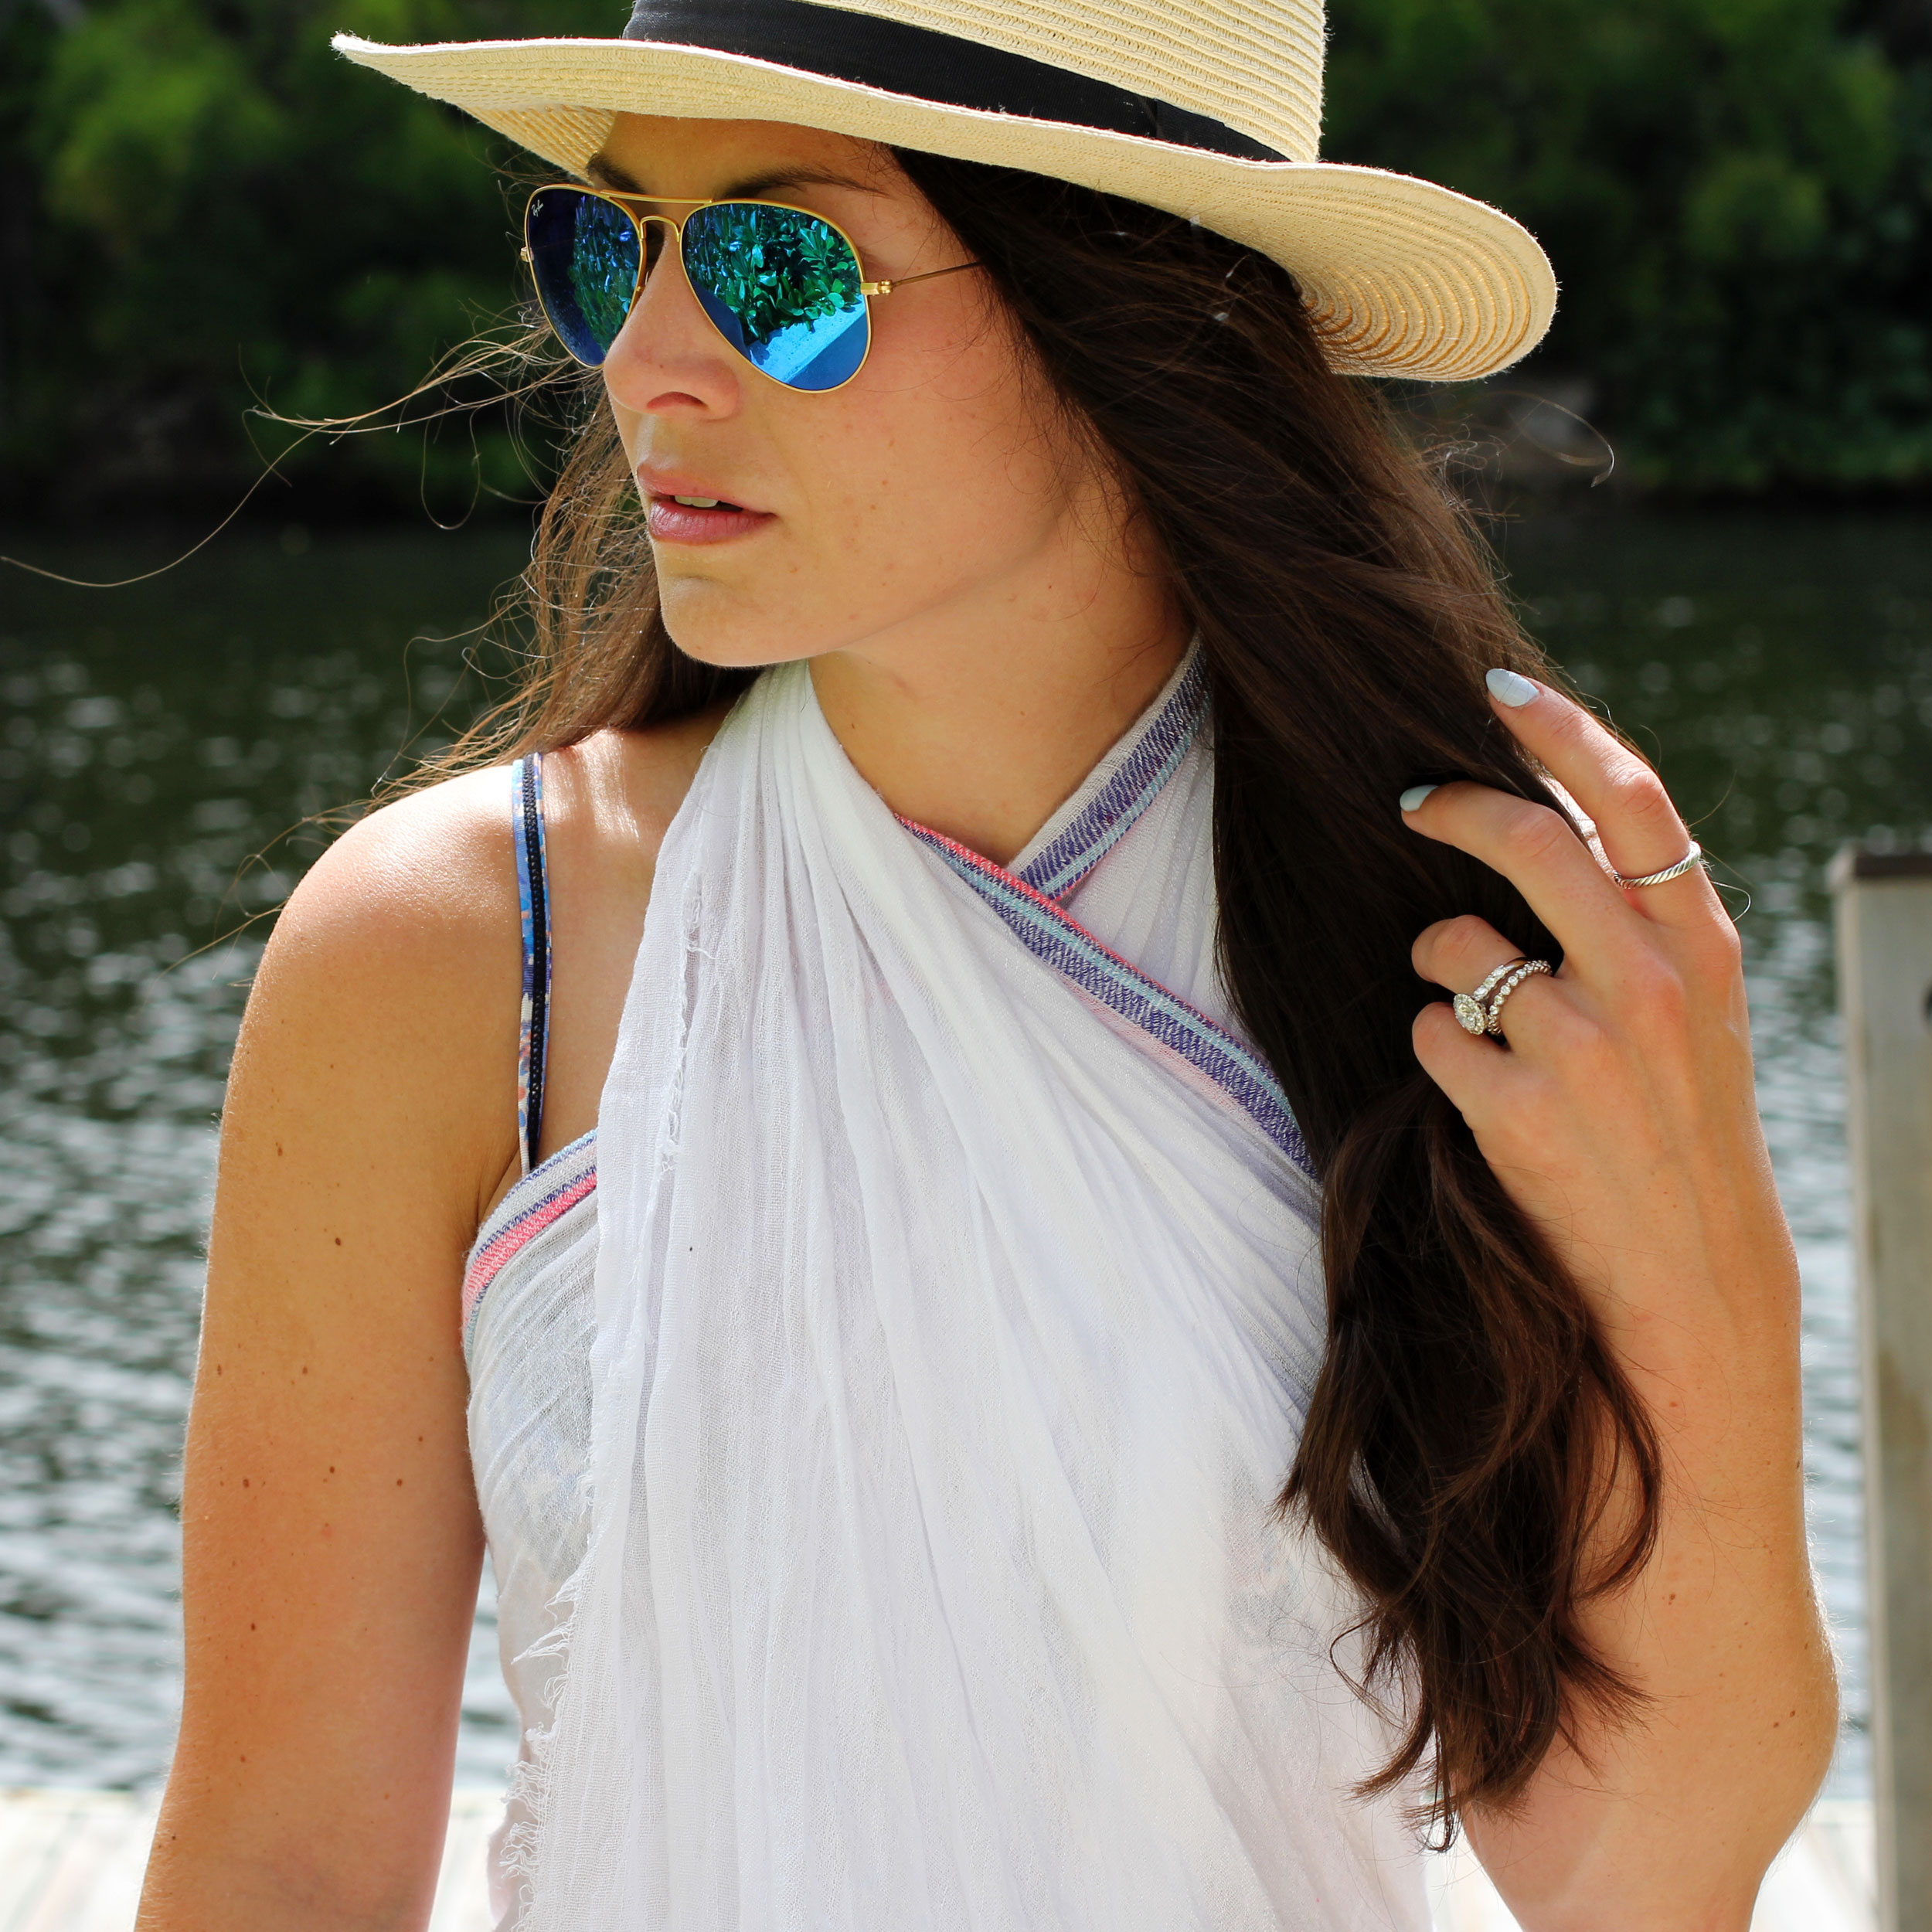 Summer Fashion, Pareo, Swimsuit Cover-up, Beach Hat, Ray-Ban Aviators, Grand Cayman